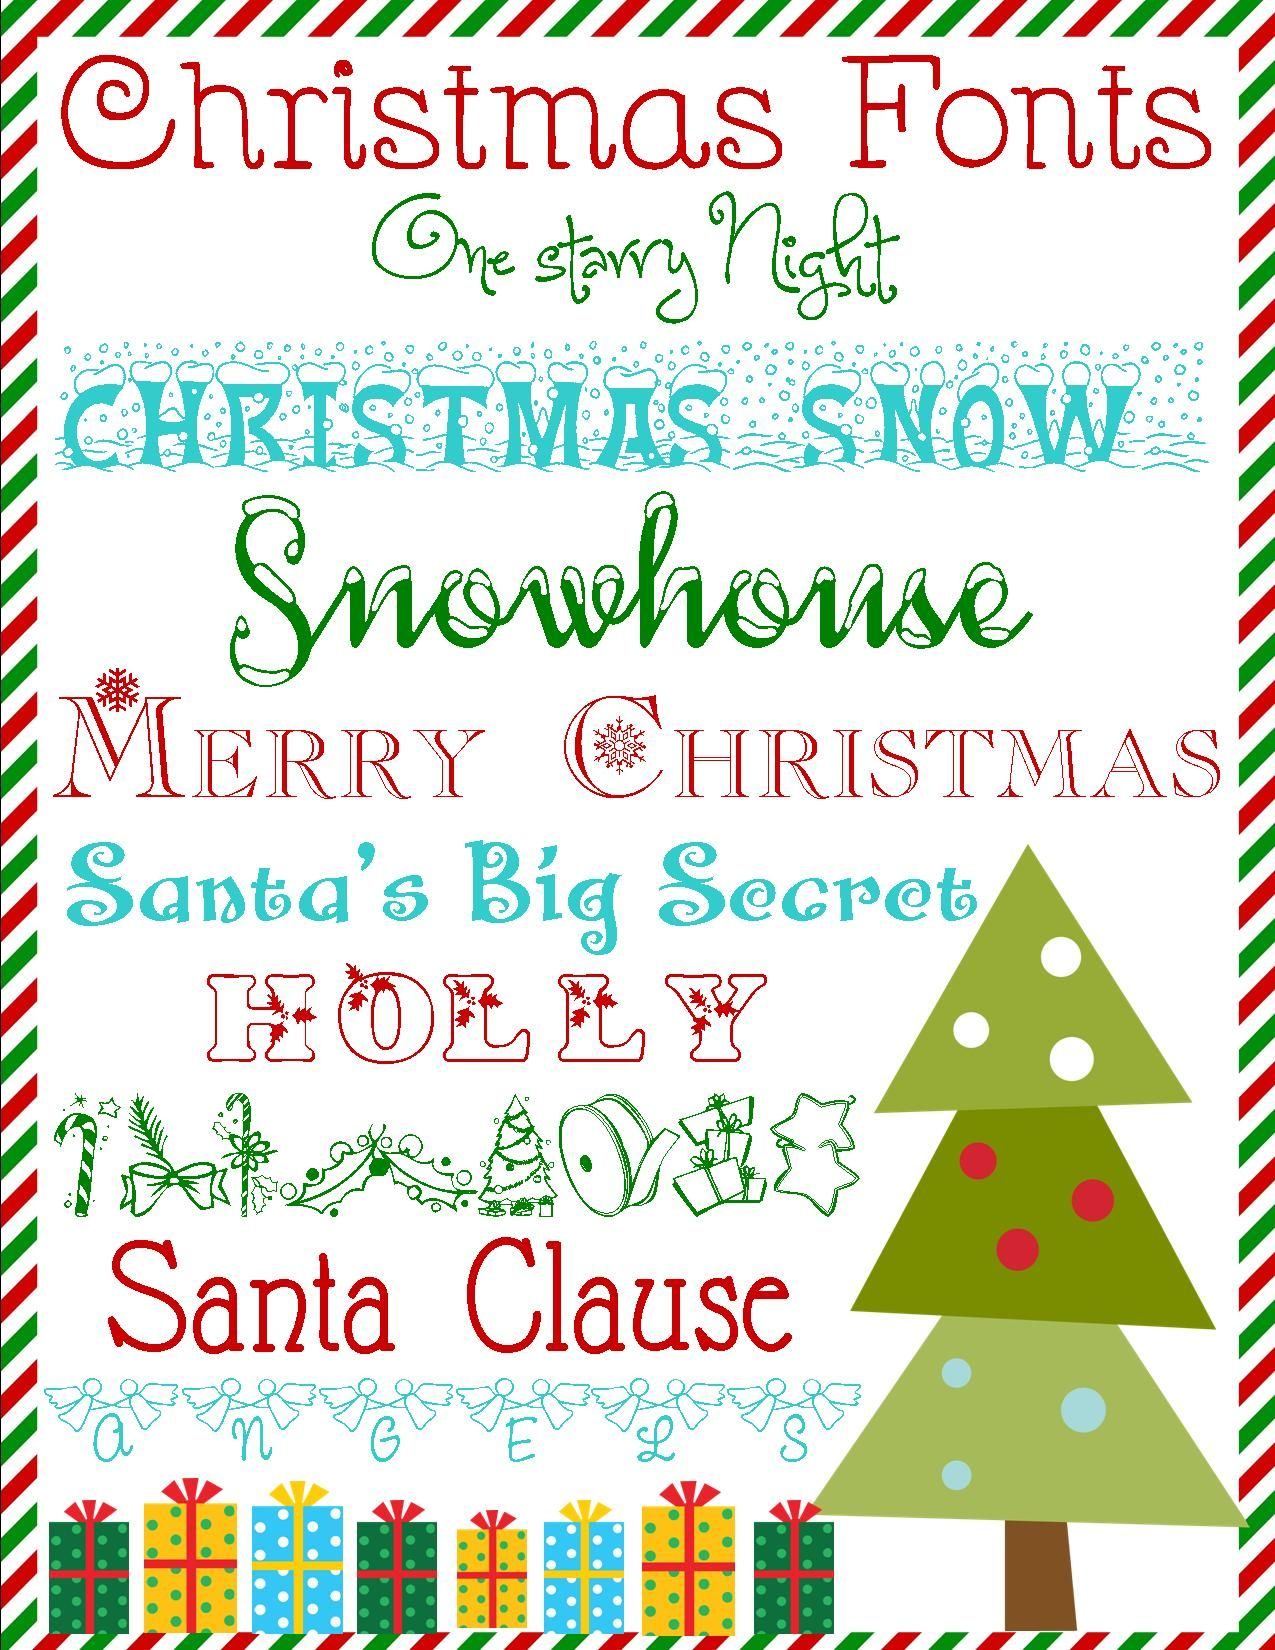 Day 6 Free Christmas Font Downloads For Day 6 of our 12